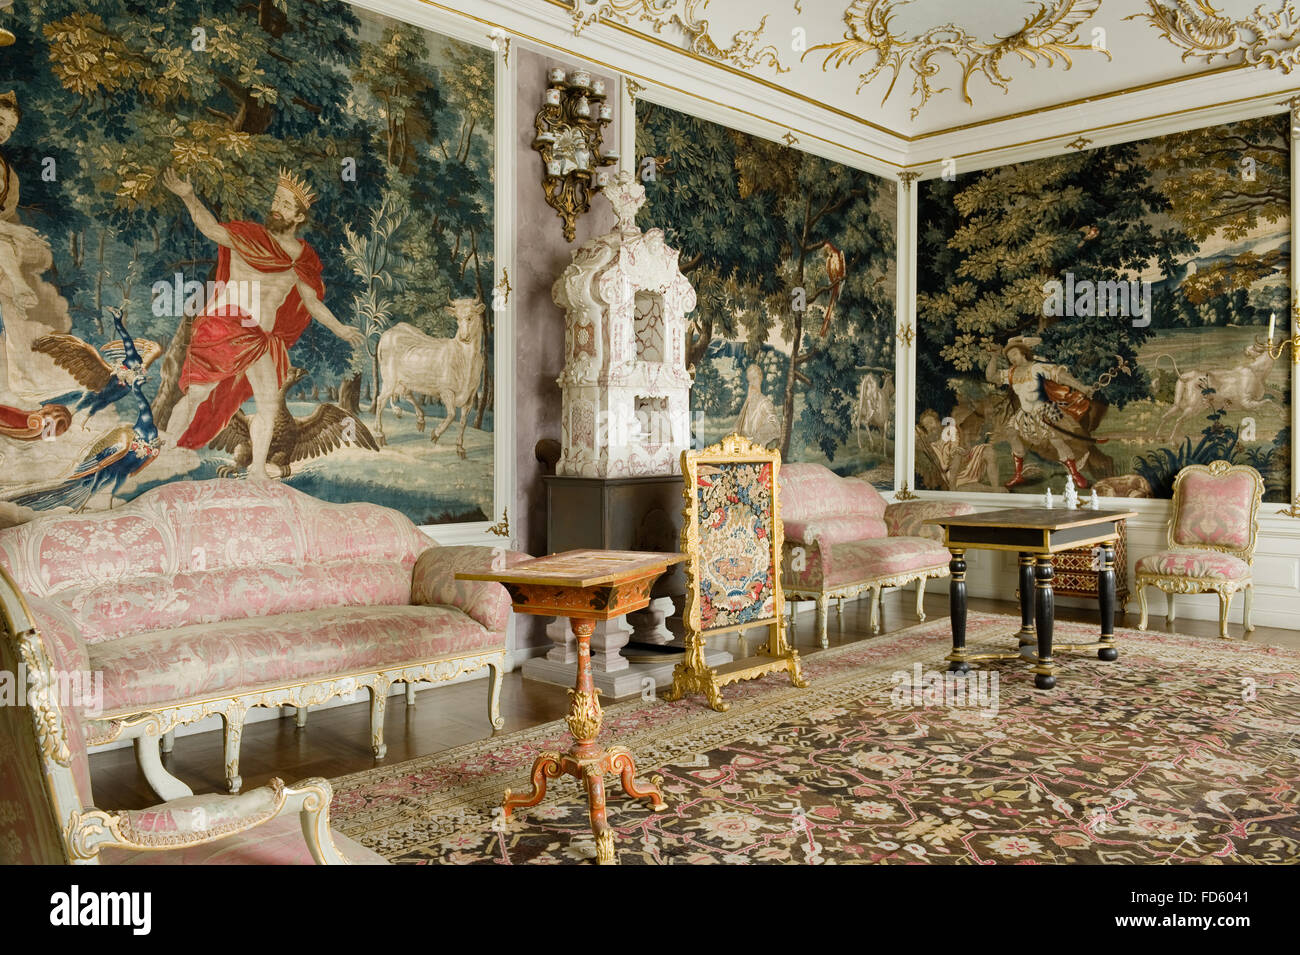 Elaborate tapestry with sofas in Gobeline room of Schloss Fasanerie near Fulda in Germany - Stock Image